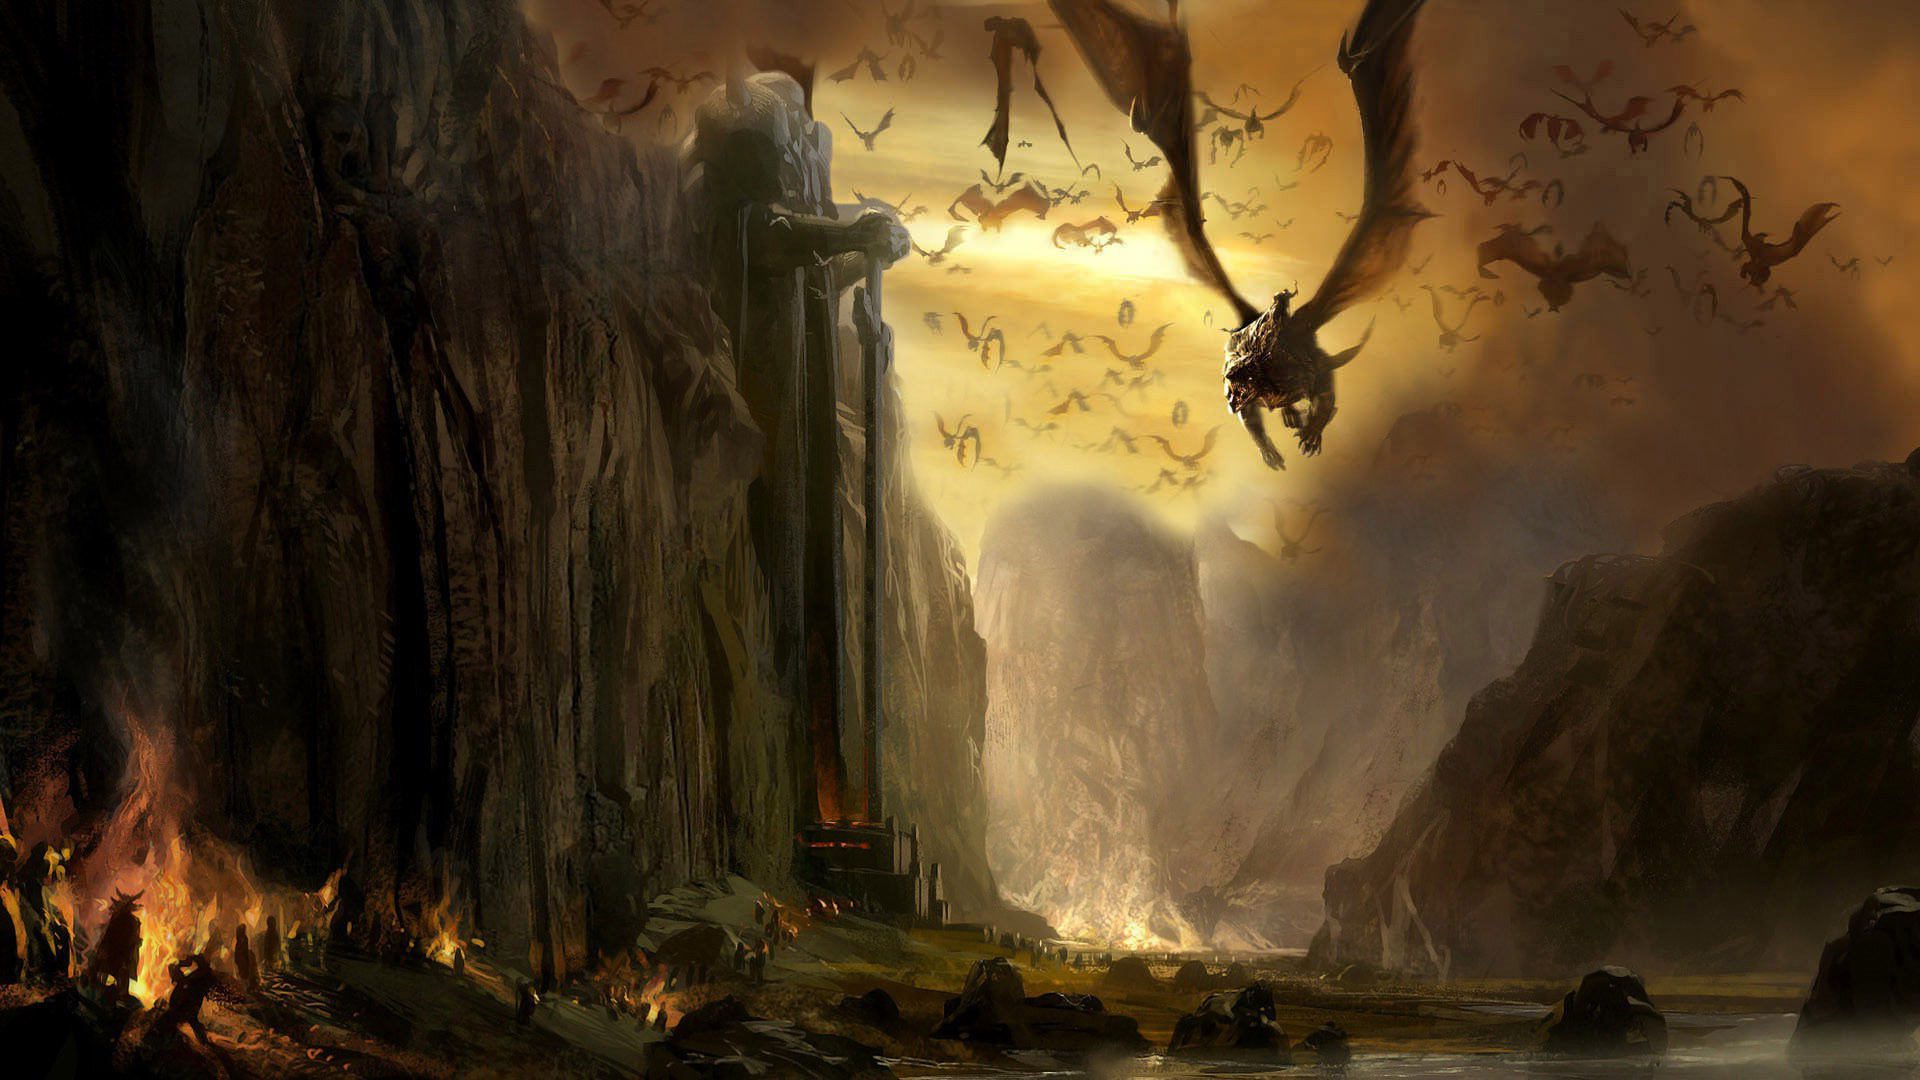 Land of dragons art